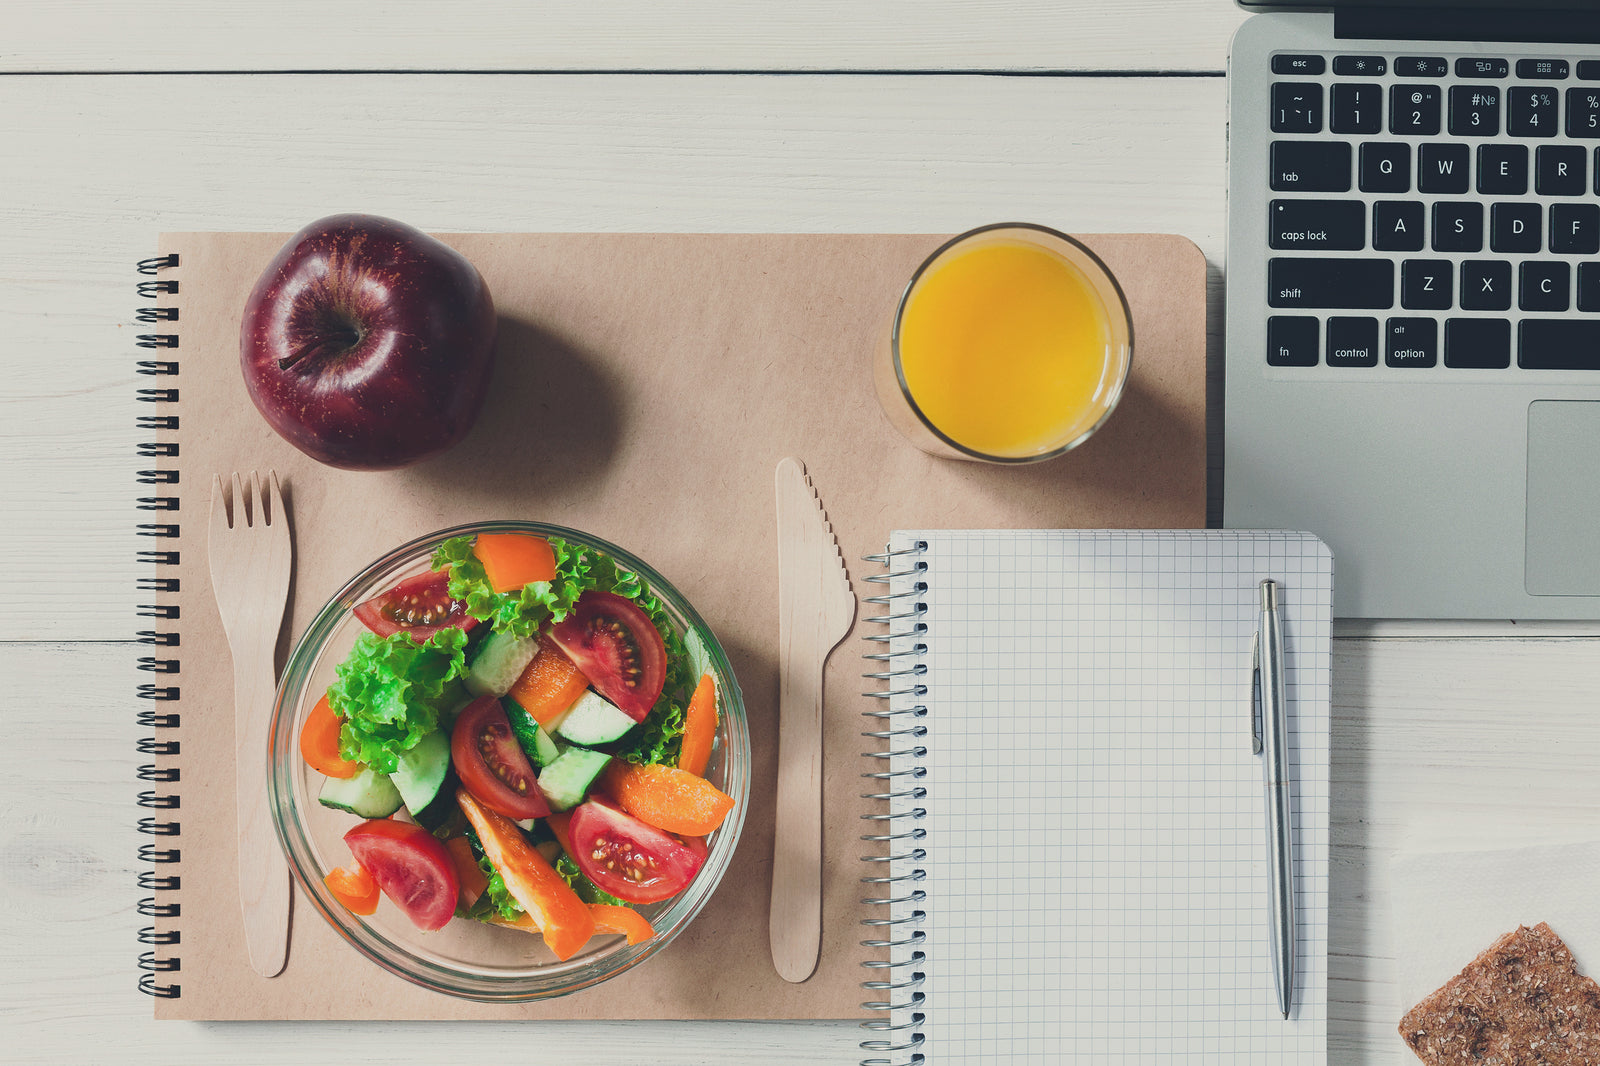 Healthy Eating in the Workplace Improves Employee Engagement